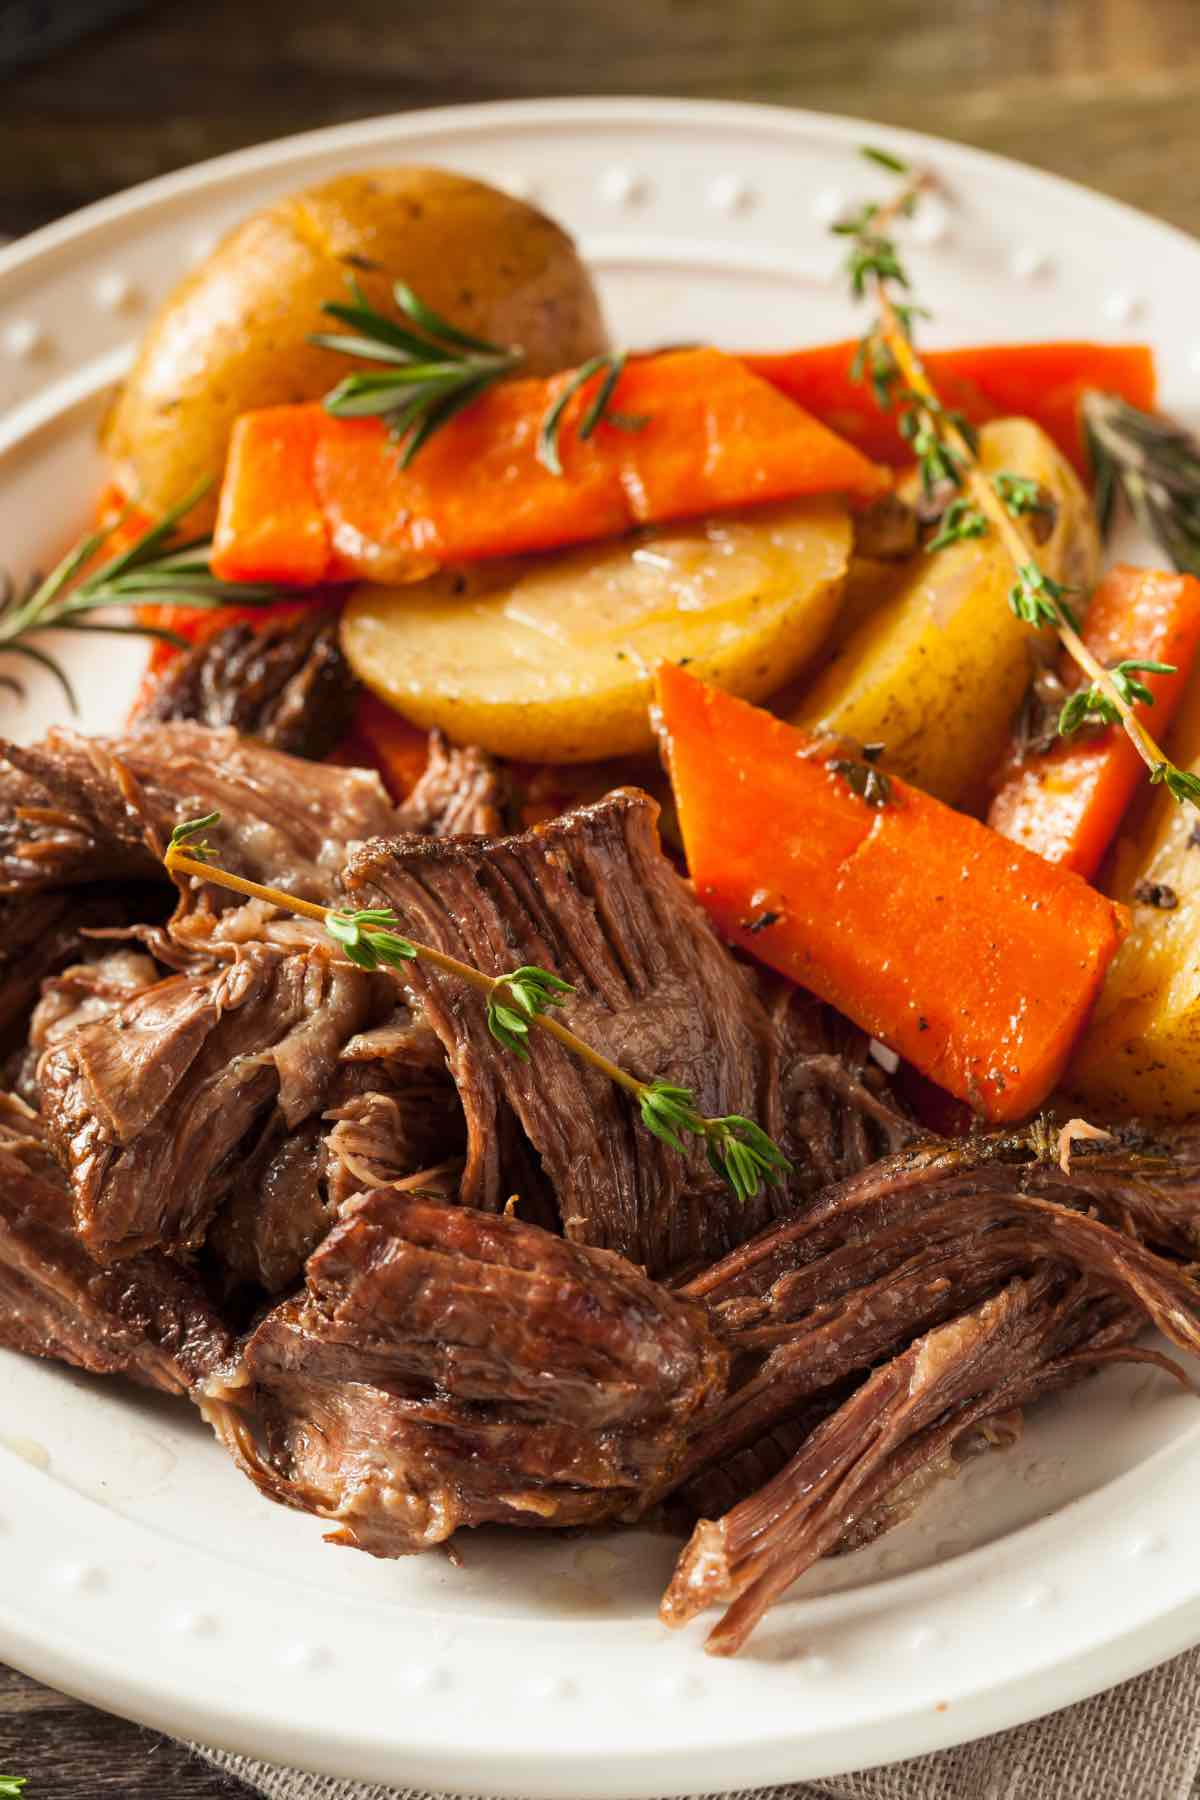 Ever wondered what dishes to serve with your Pot Roast Dinner? Well, we've rounded up 16 Best Pot Roast Sides that are easy and delicious. From healthy vegetables to potatoes and rice, we've got you covered!